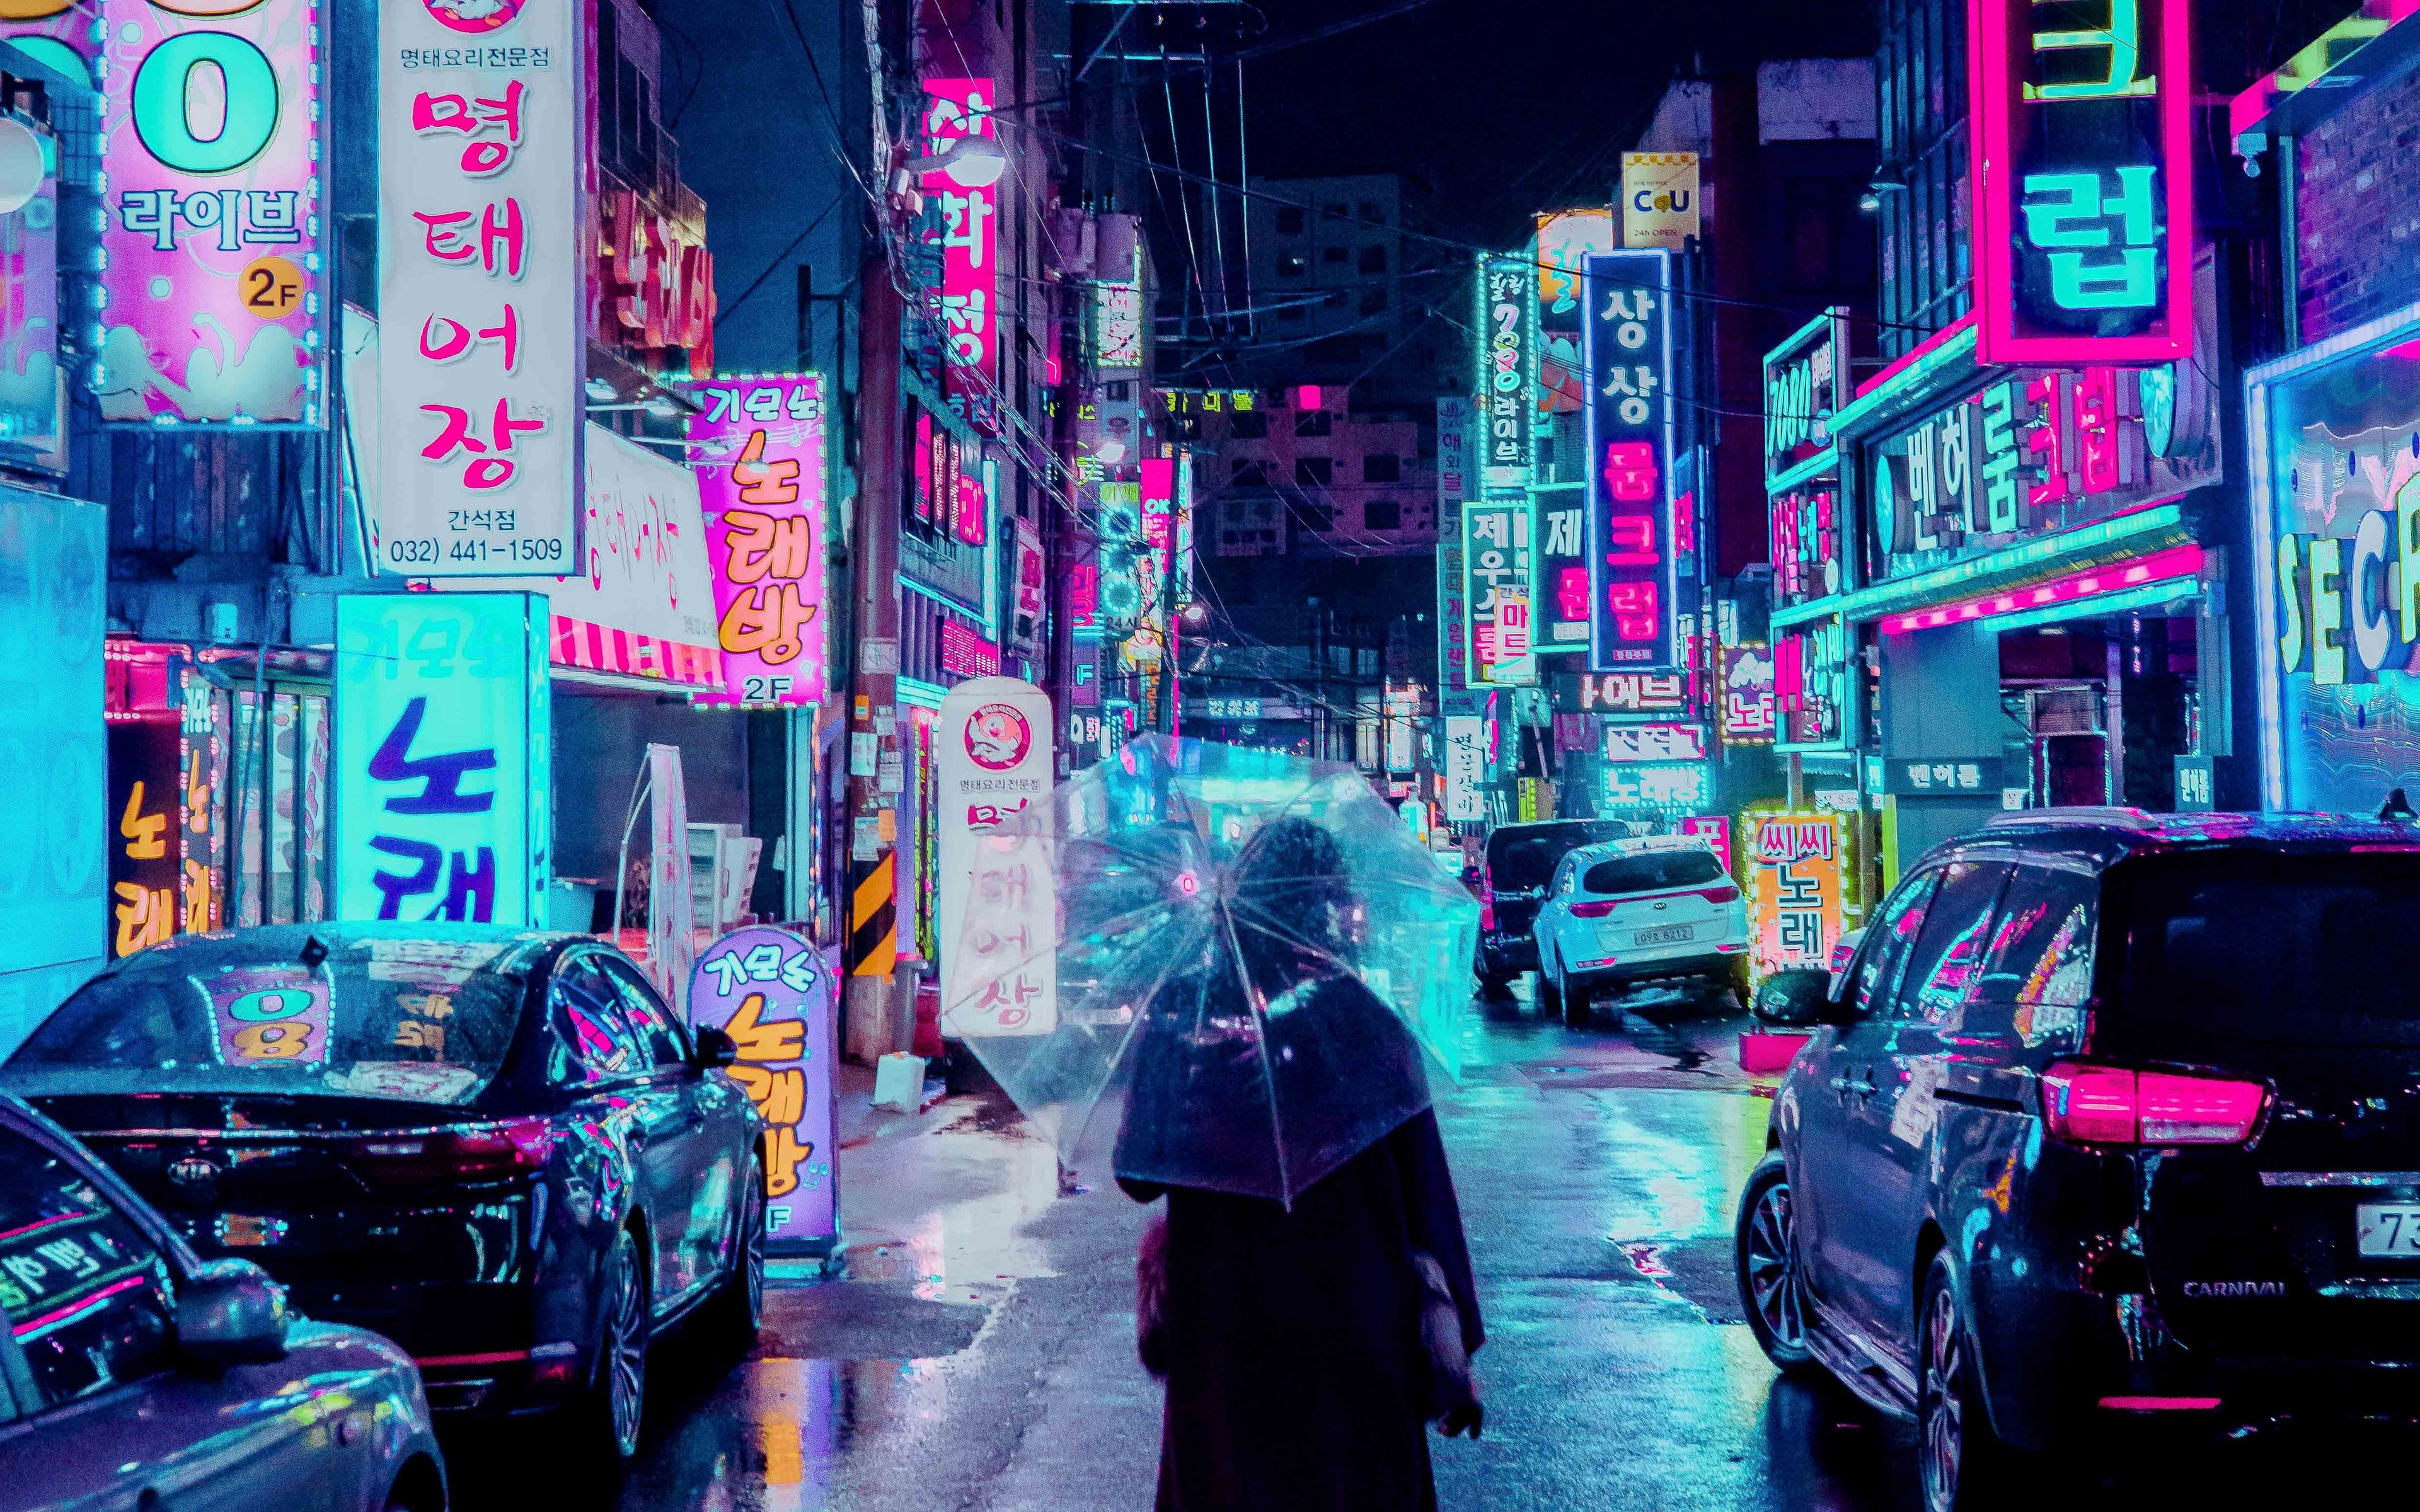 Japan Neon Wallpapers Top Free Japan Neon Backgrounds Wallpaperaccess